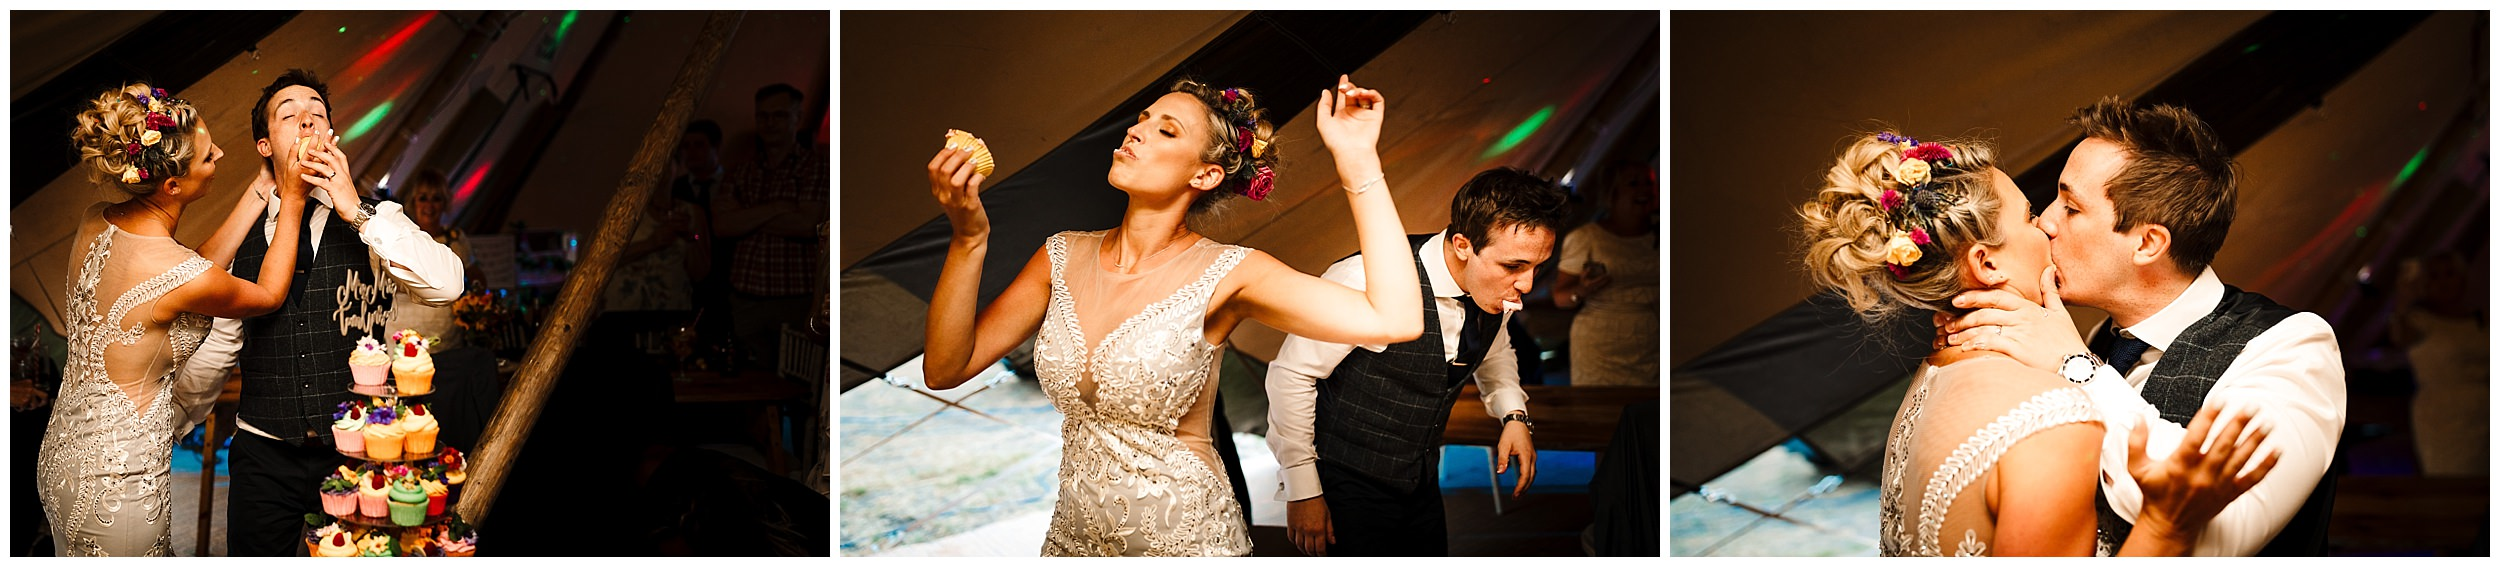 a bride and groom shove cake into each other's faces at their wedding